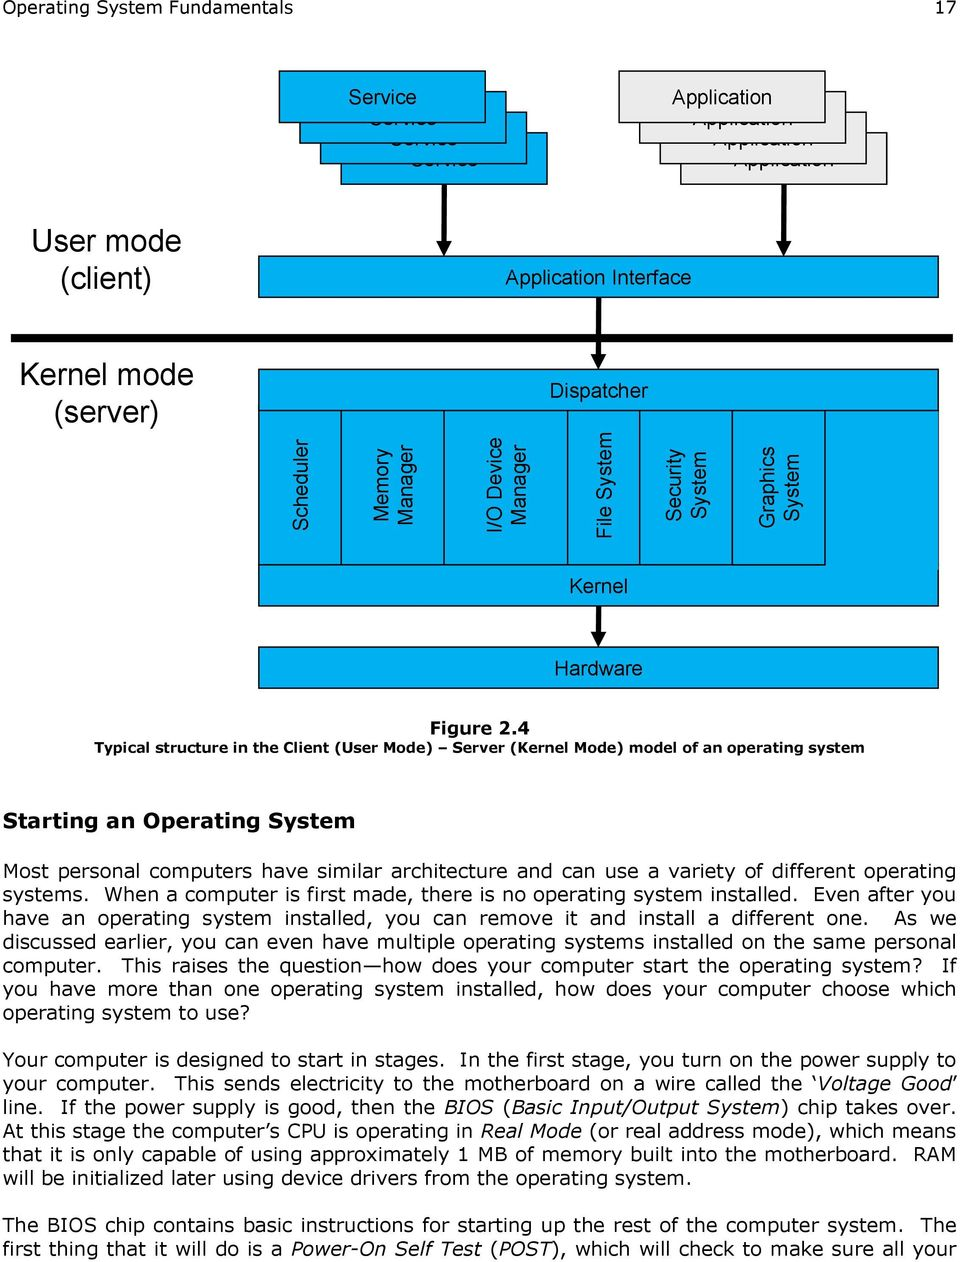 4 Typical structure in the Client (User Mode) Server (Kernel Mode) model of an operating system Starting an Operating System Most personal computers have similar architecture and can use a variety of